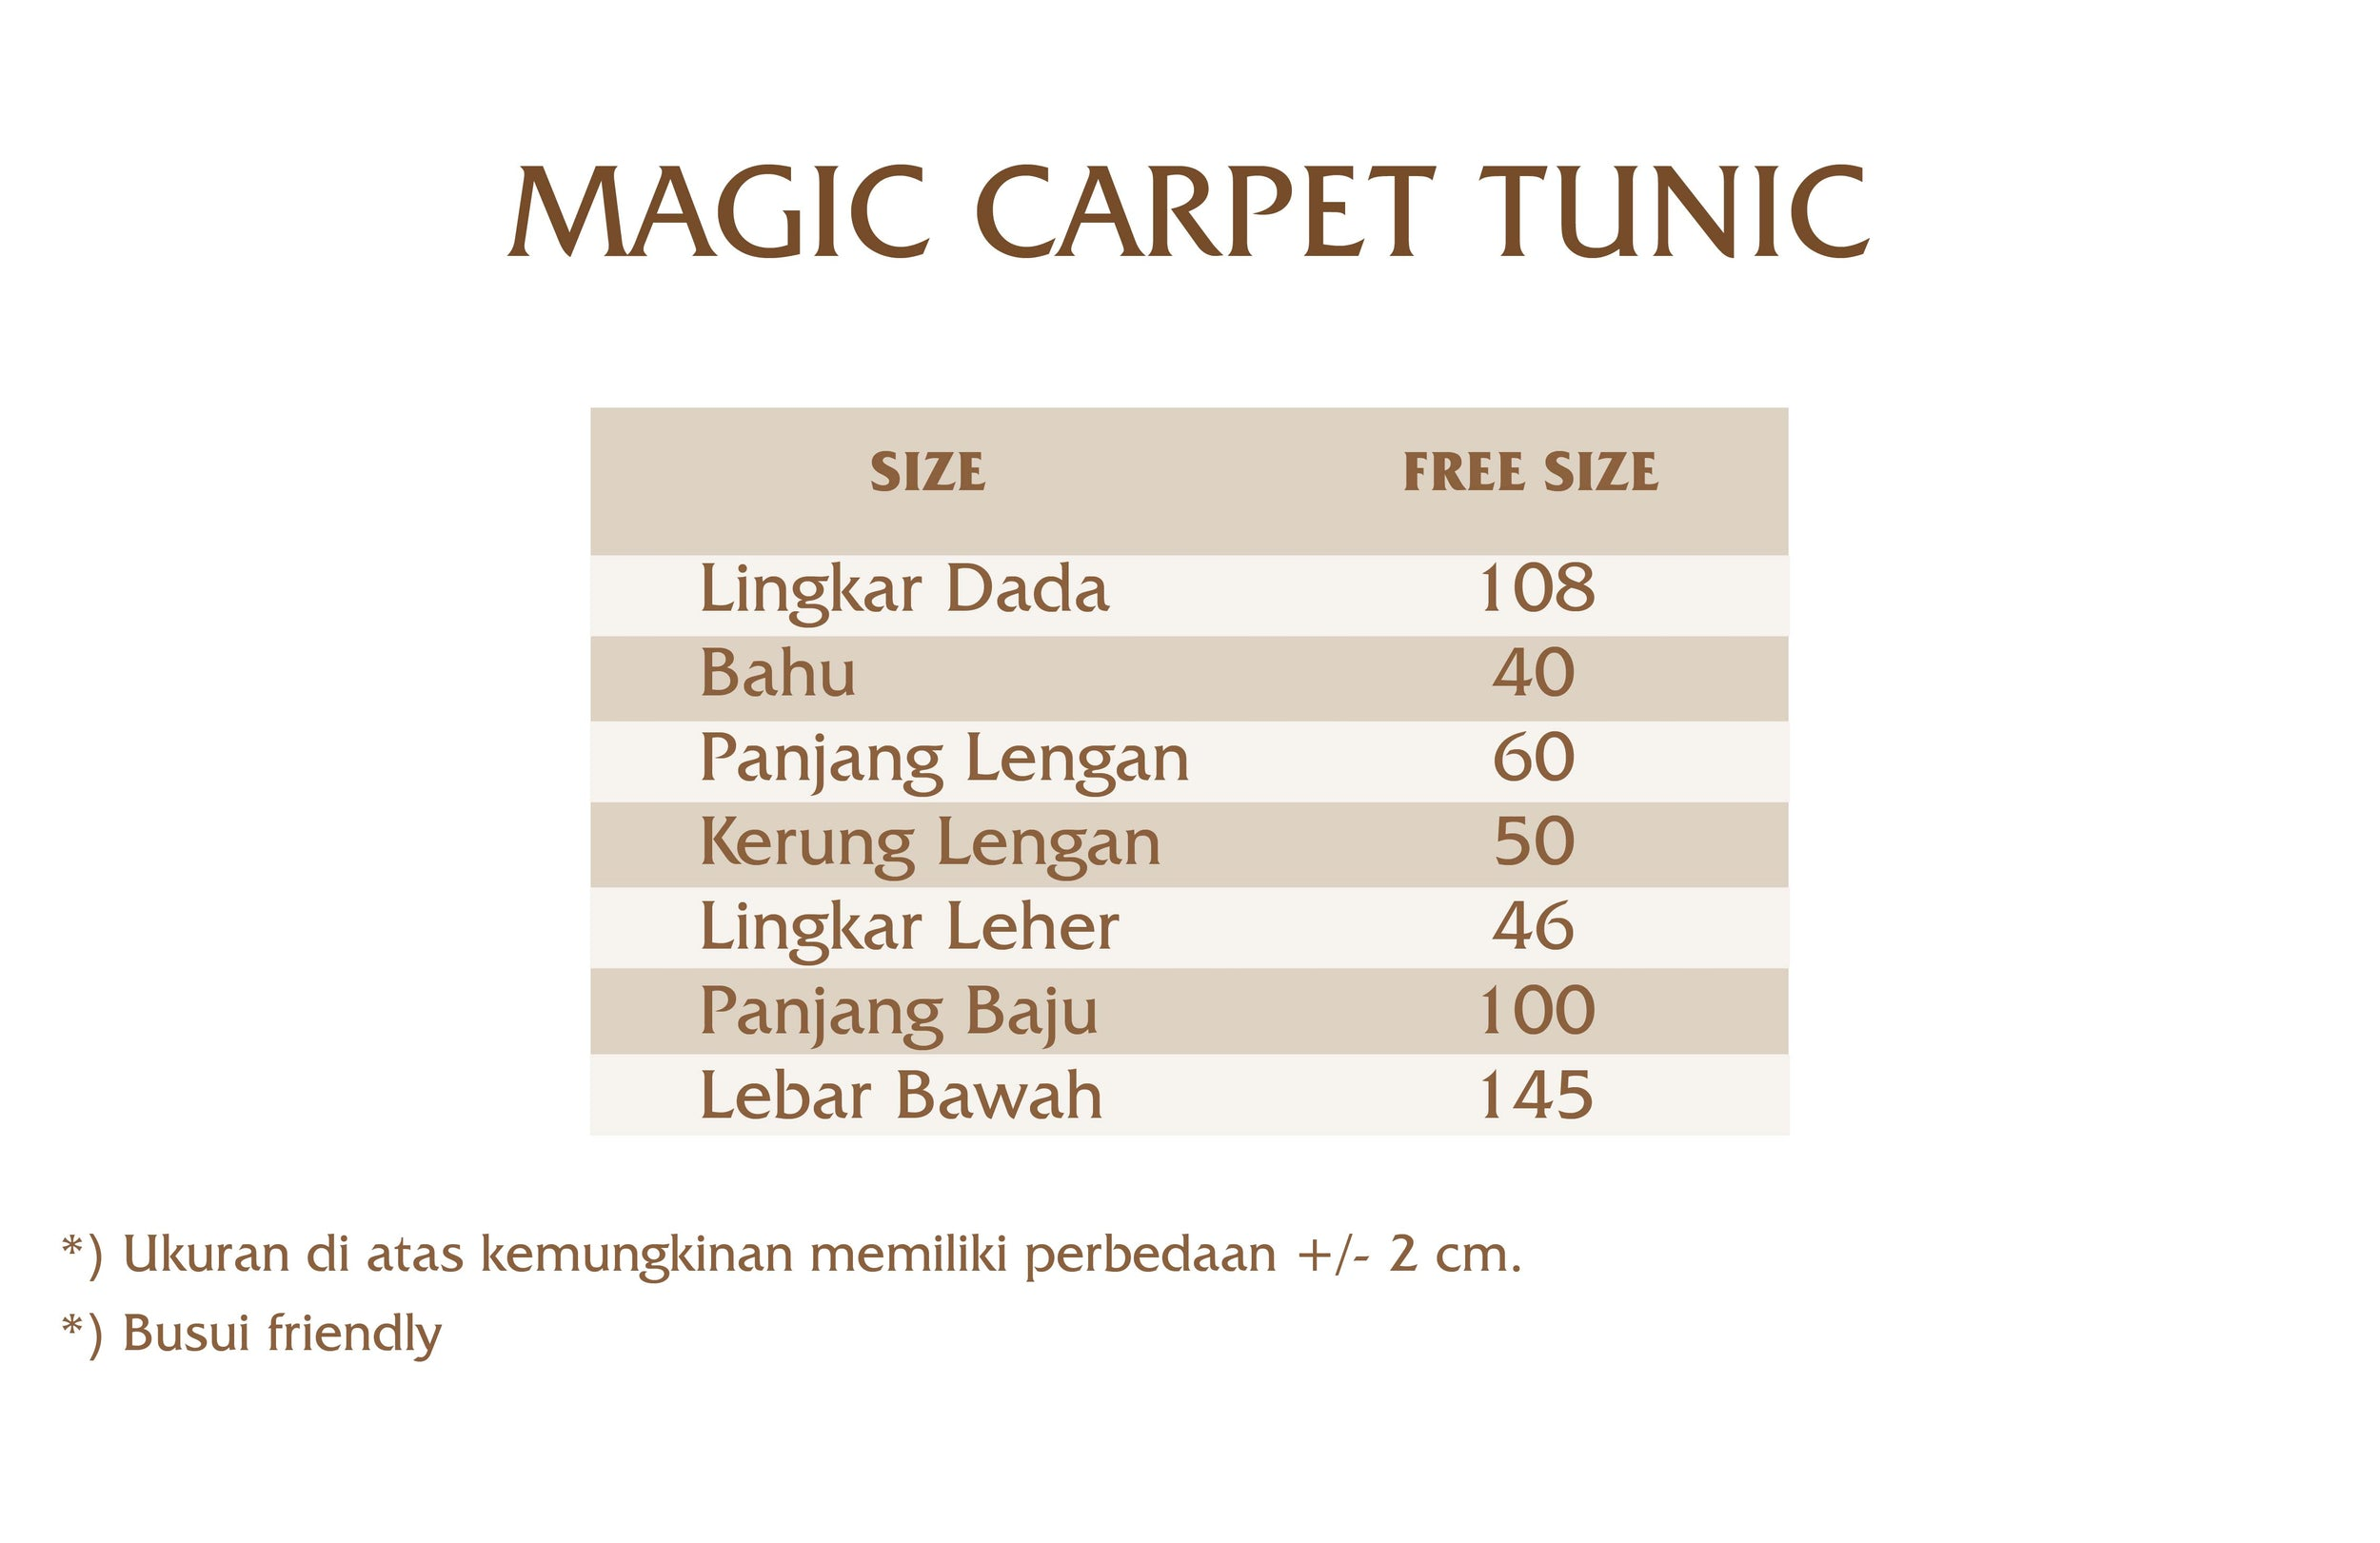 Magic Carpet Tunic